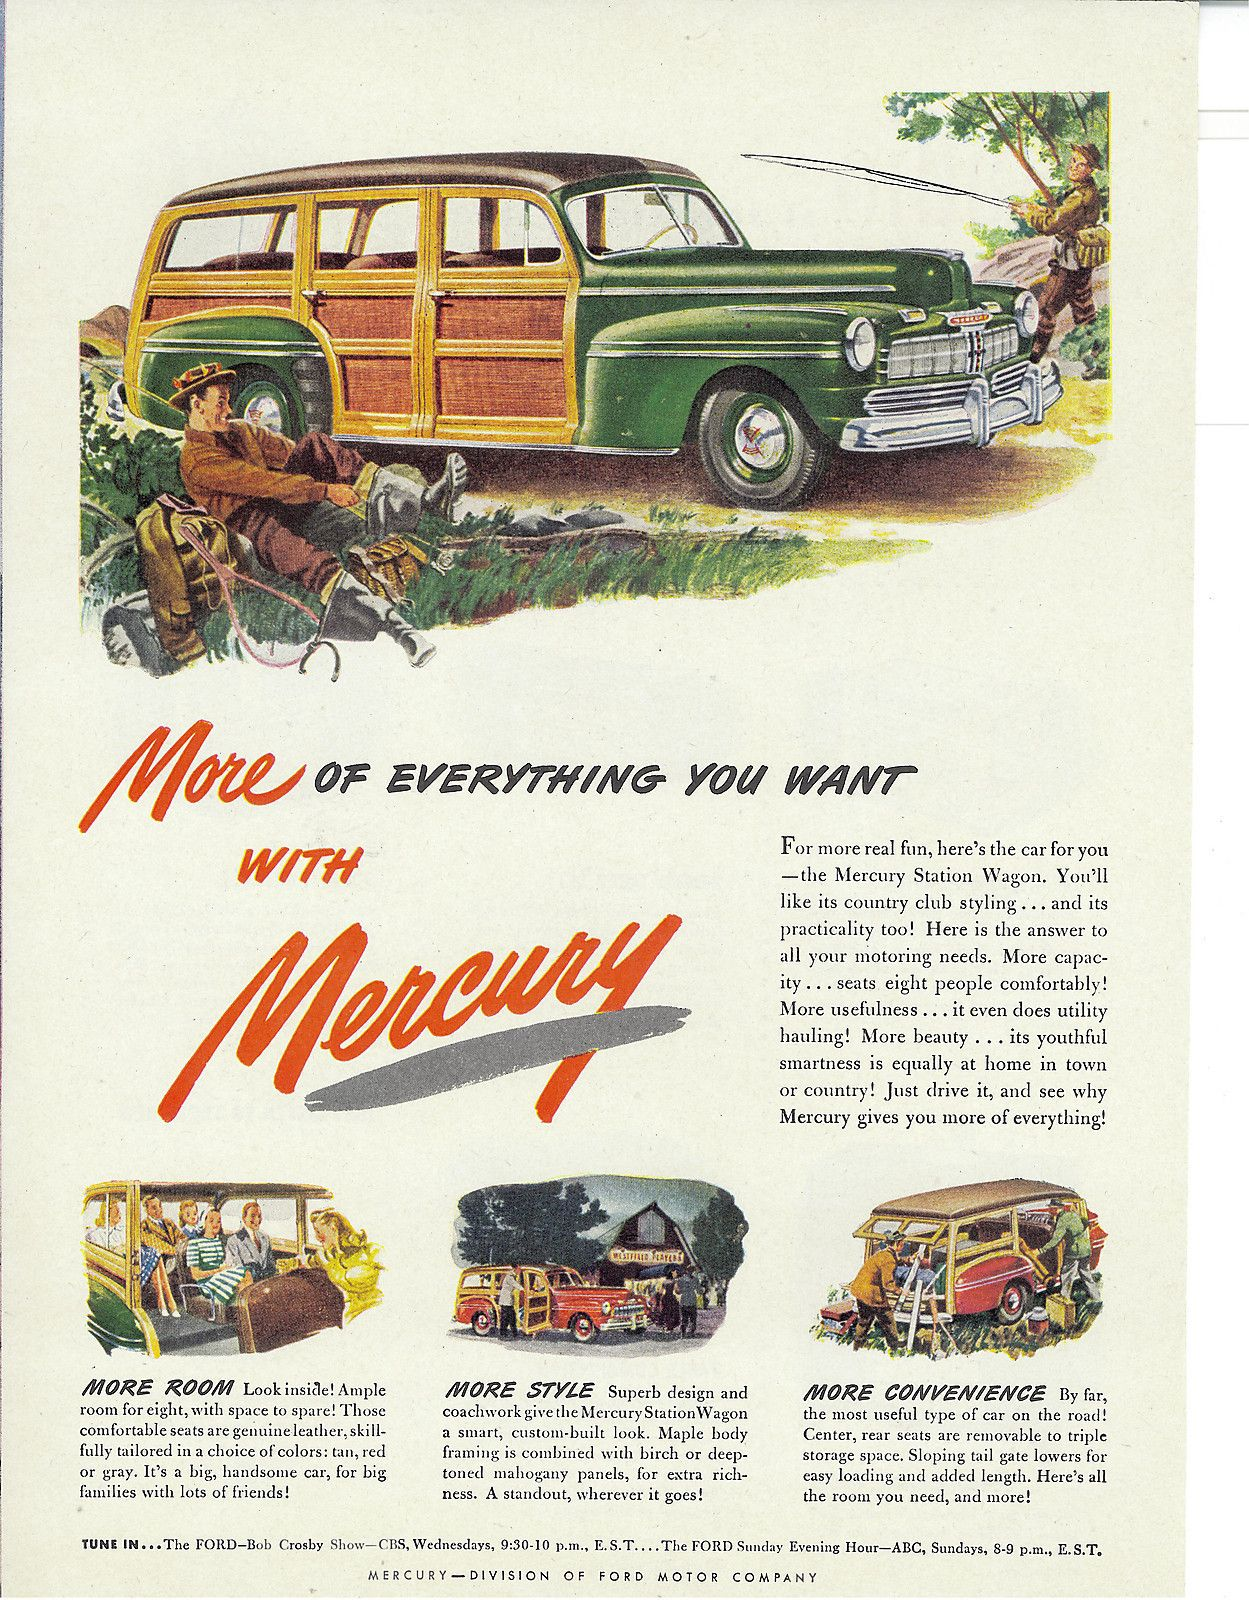 1946 Print Ad - The Mercury Station Wagon Car - \'More of Everything ...